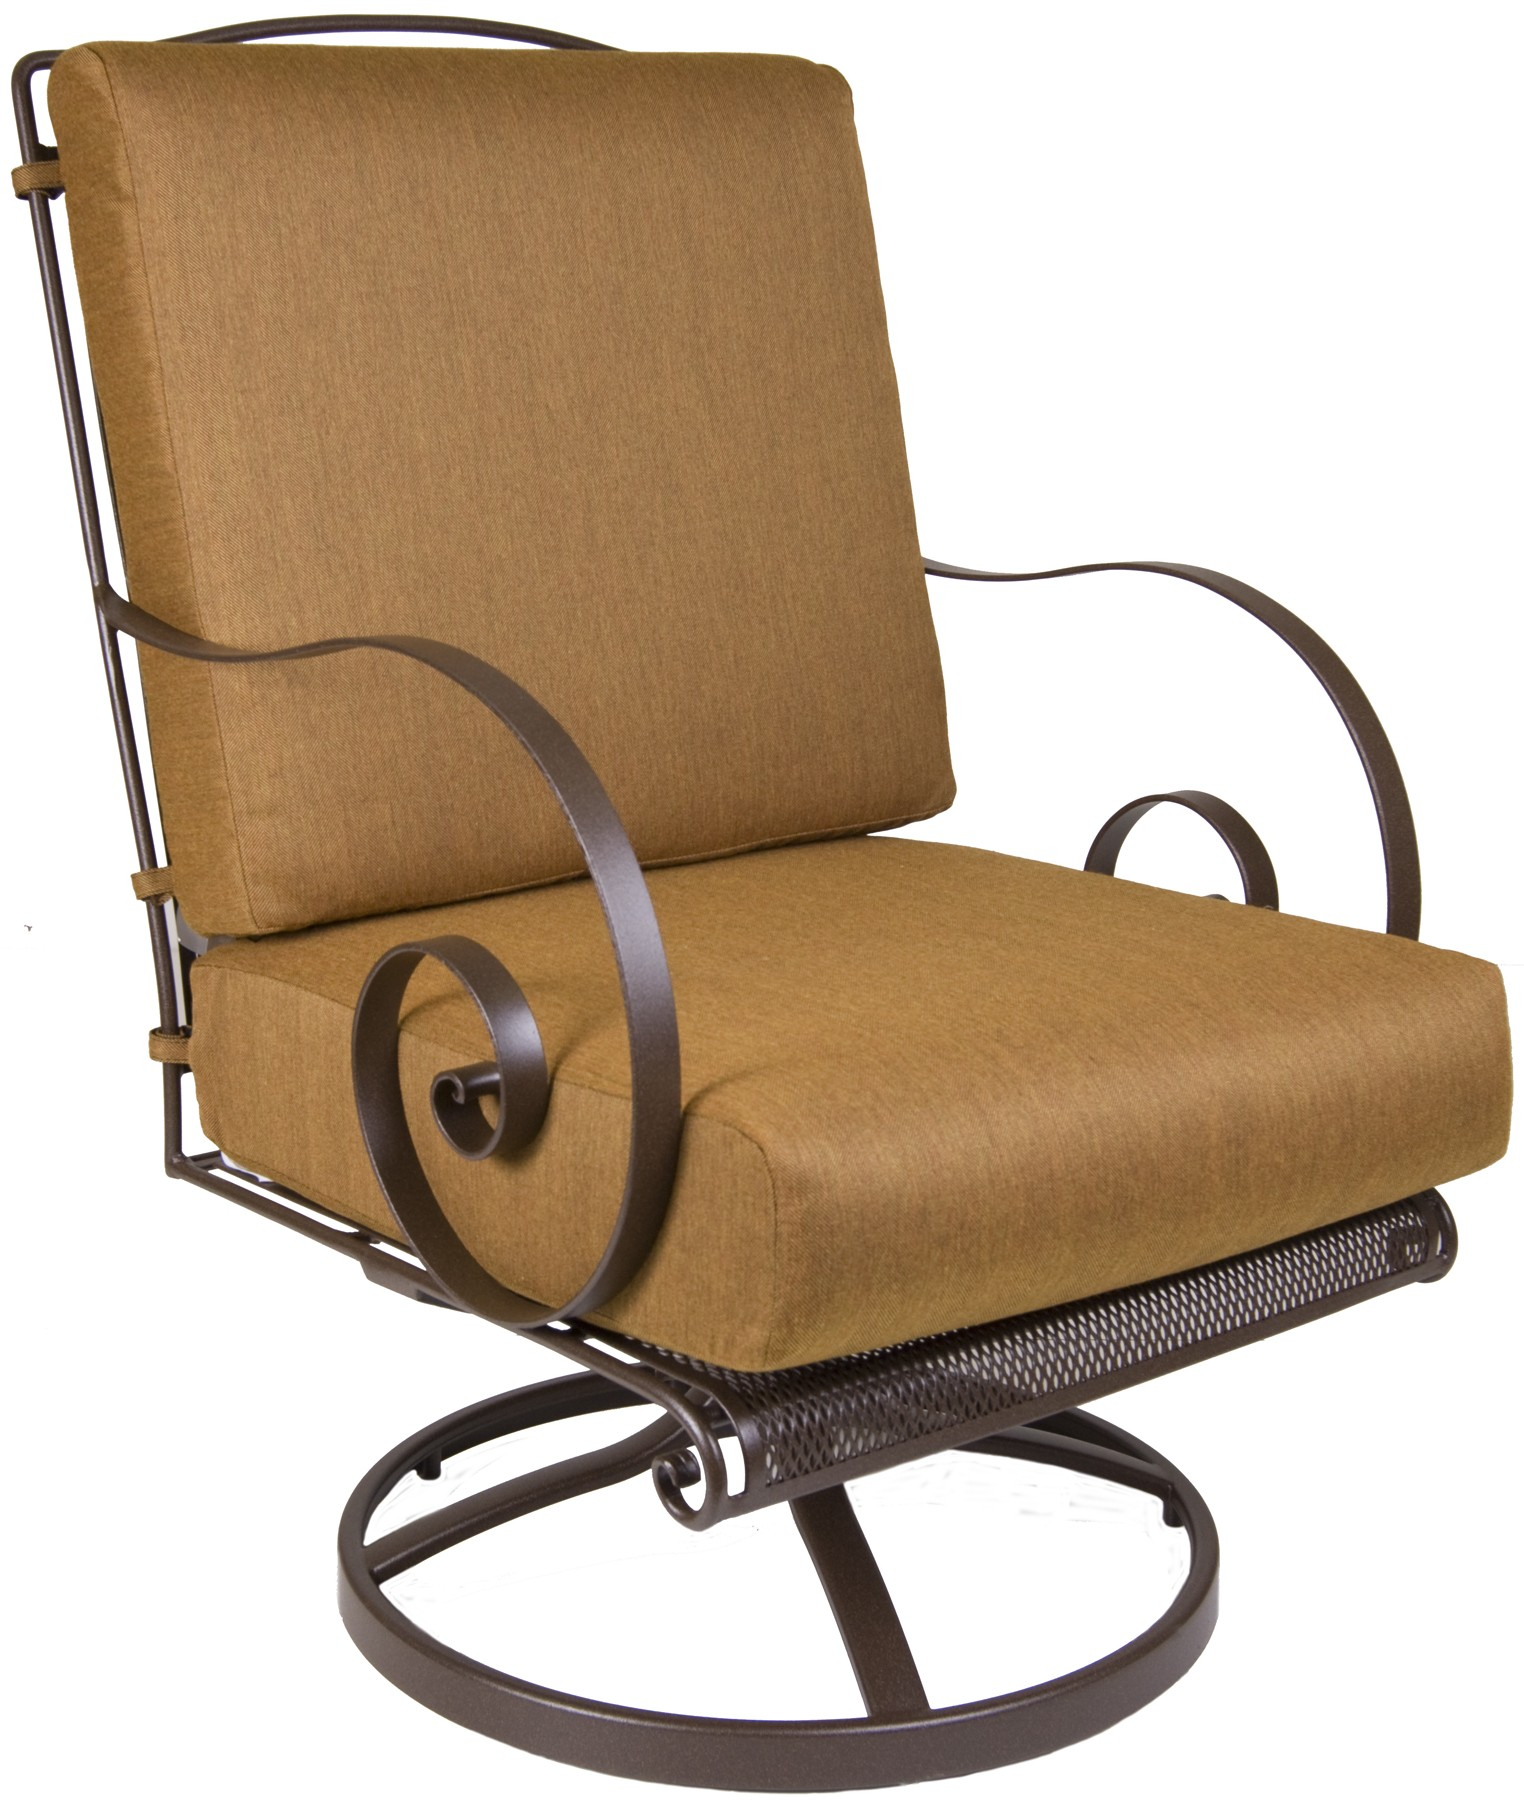 Avalon Swivel Rocker Lounge Chair Throughout Orange Rocking Chairs Lounge Chairs (View 3 of 20)